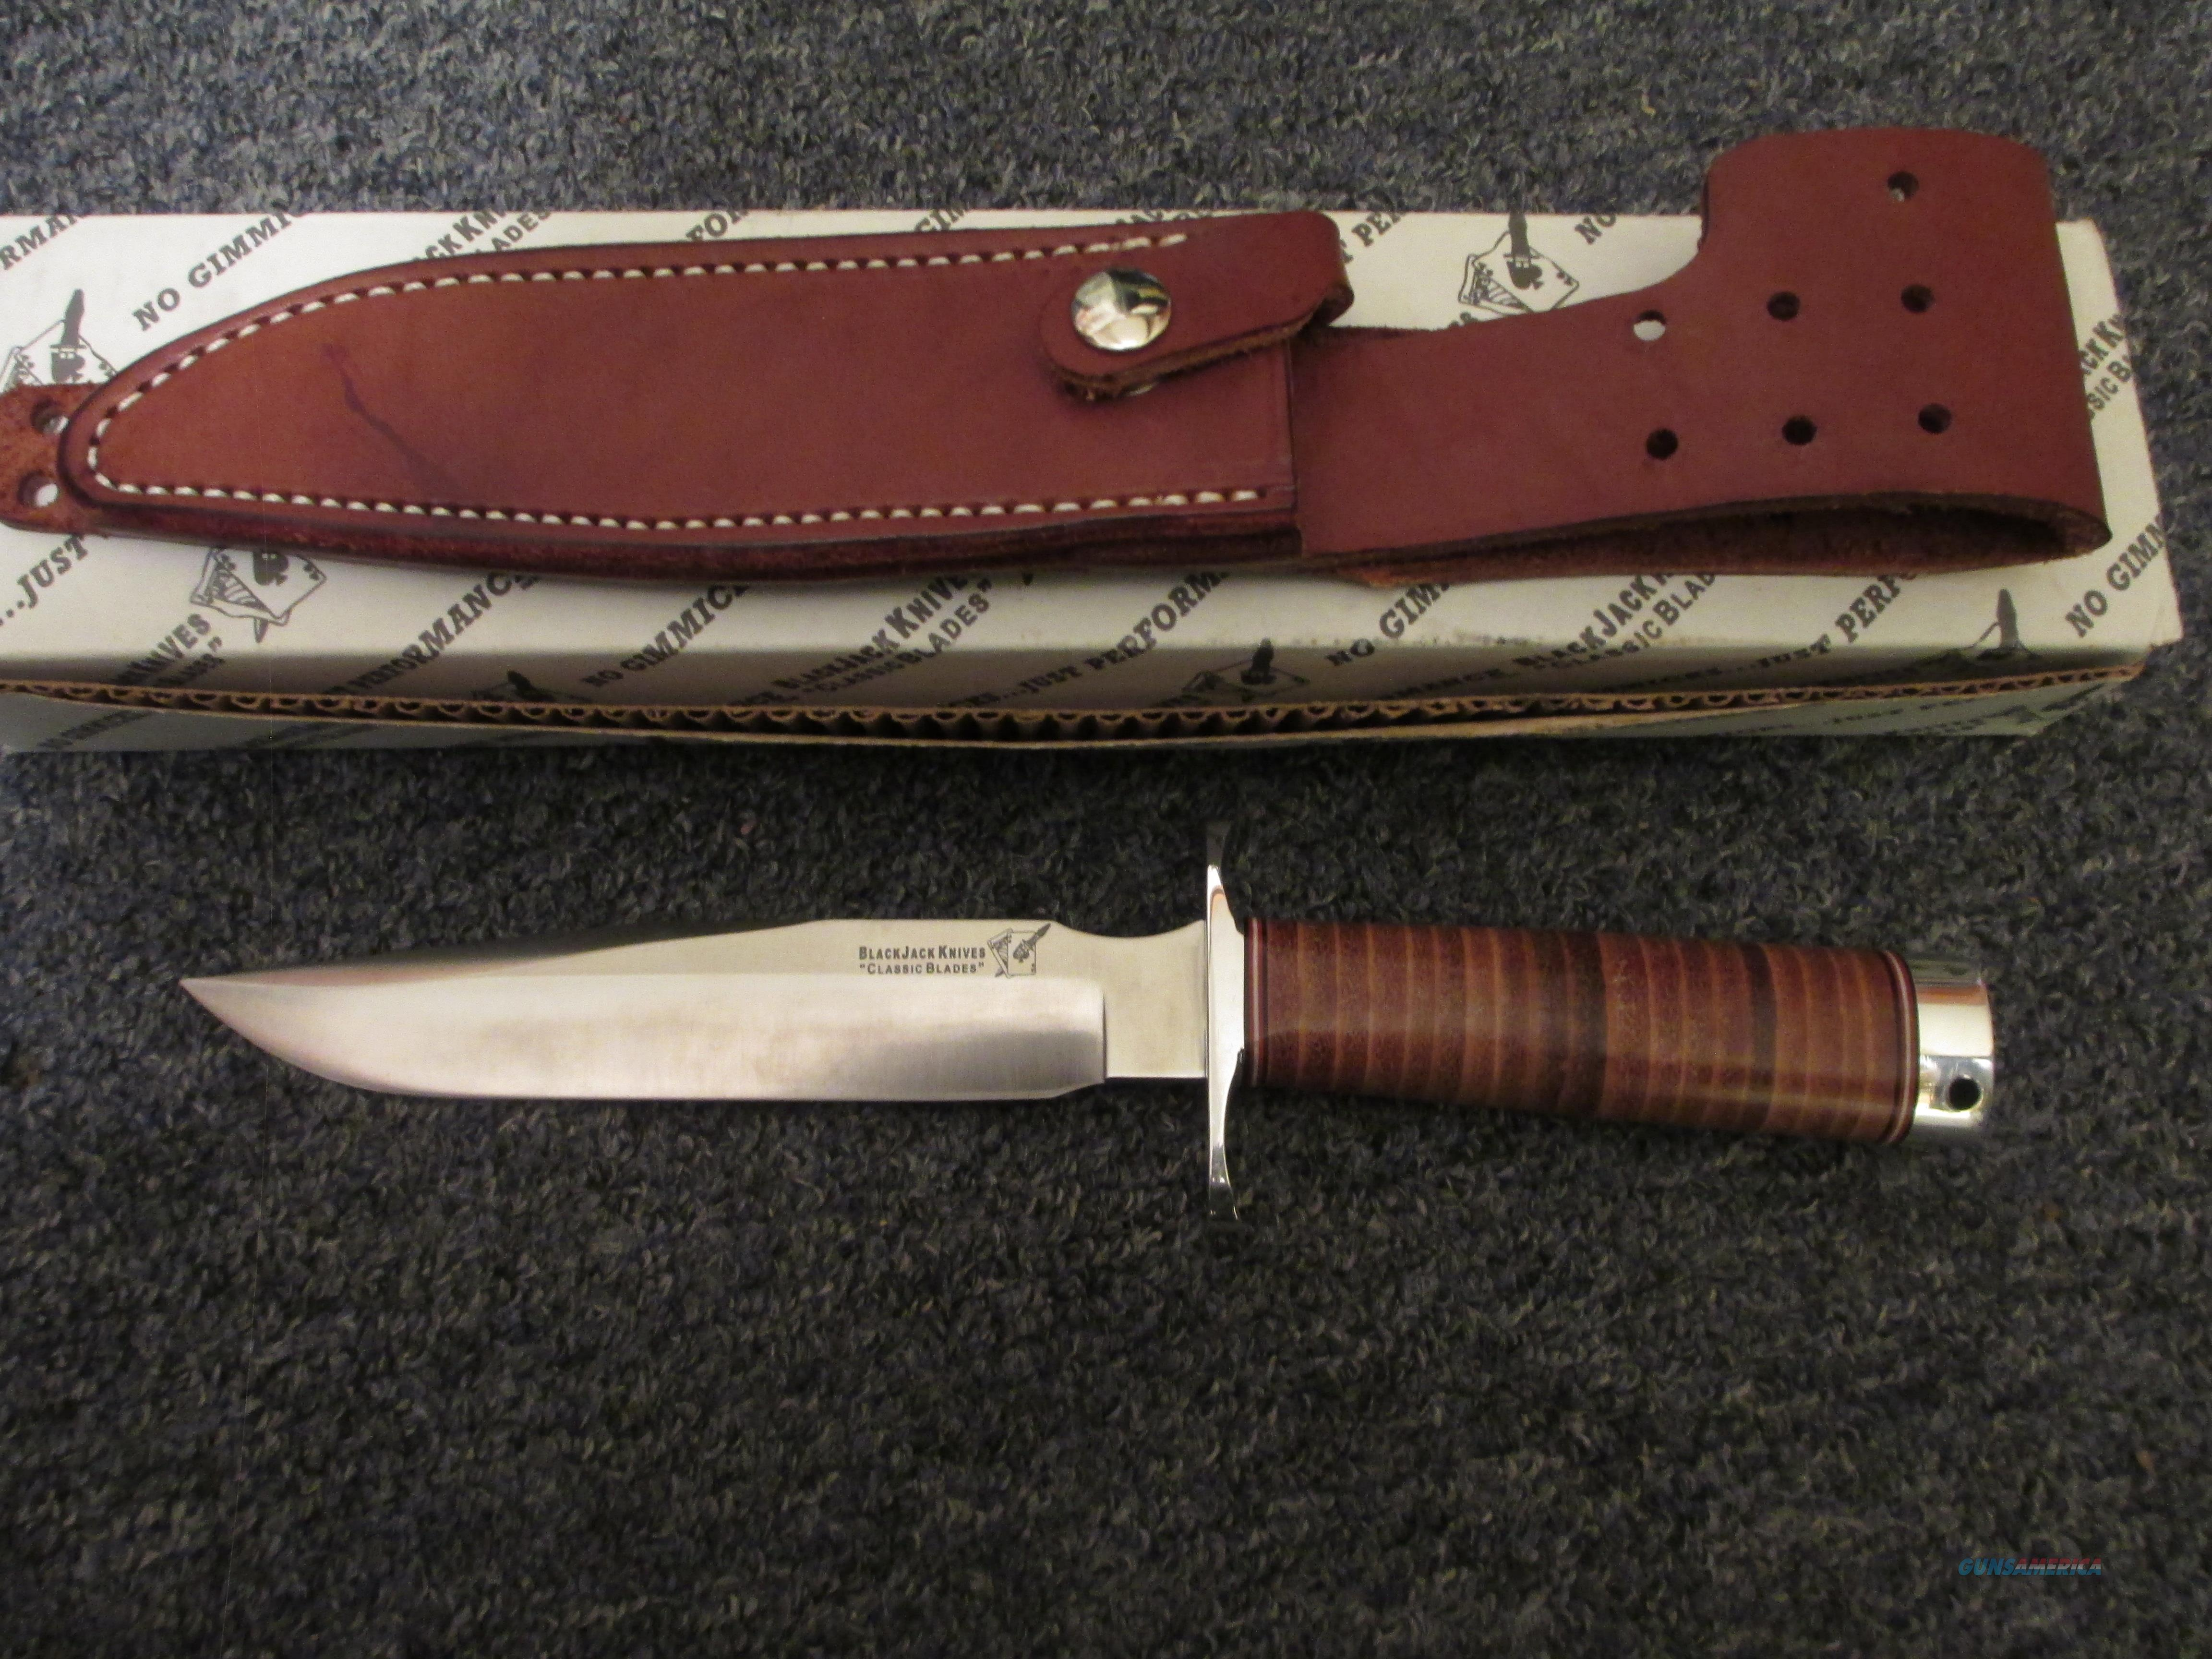 BlackJack model 1-7 with sheath in original box   Non-Guns > Knives/Swords > Knives > Fixed Blade > Hand Made